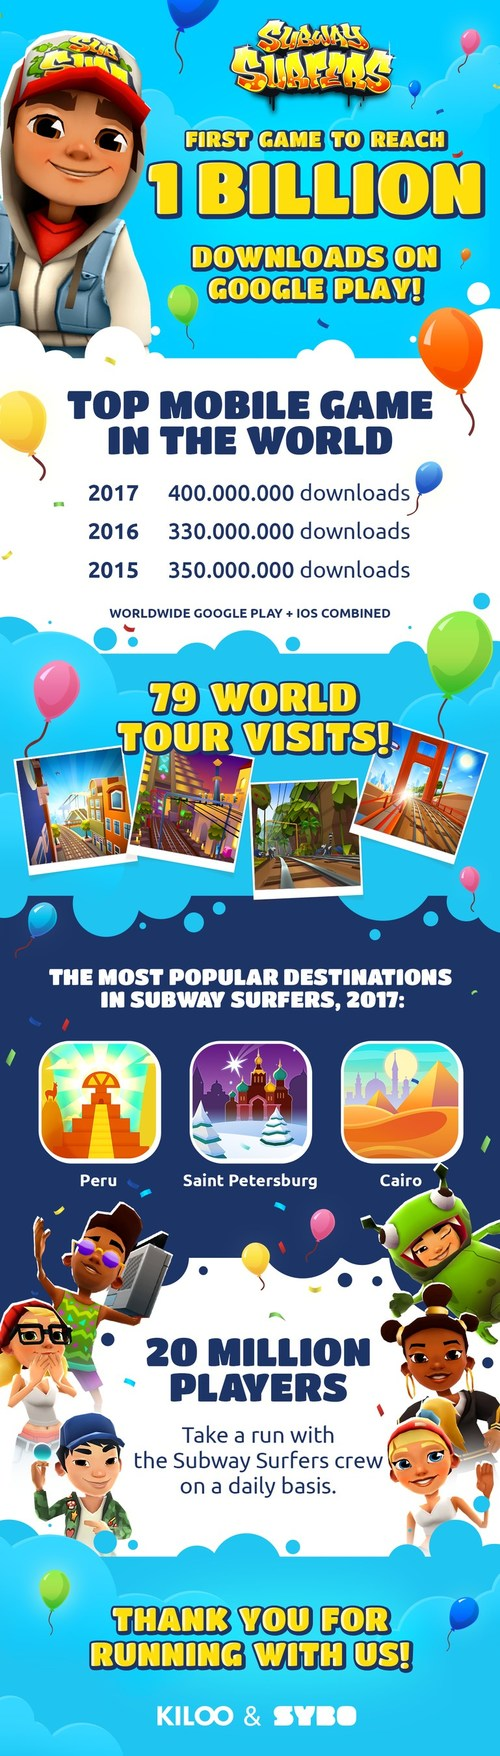 Subway Surfers, the endless runner phenomenon, has been downloaded more than 1 billion times on Google Play.